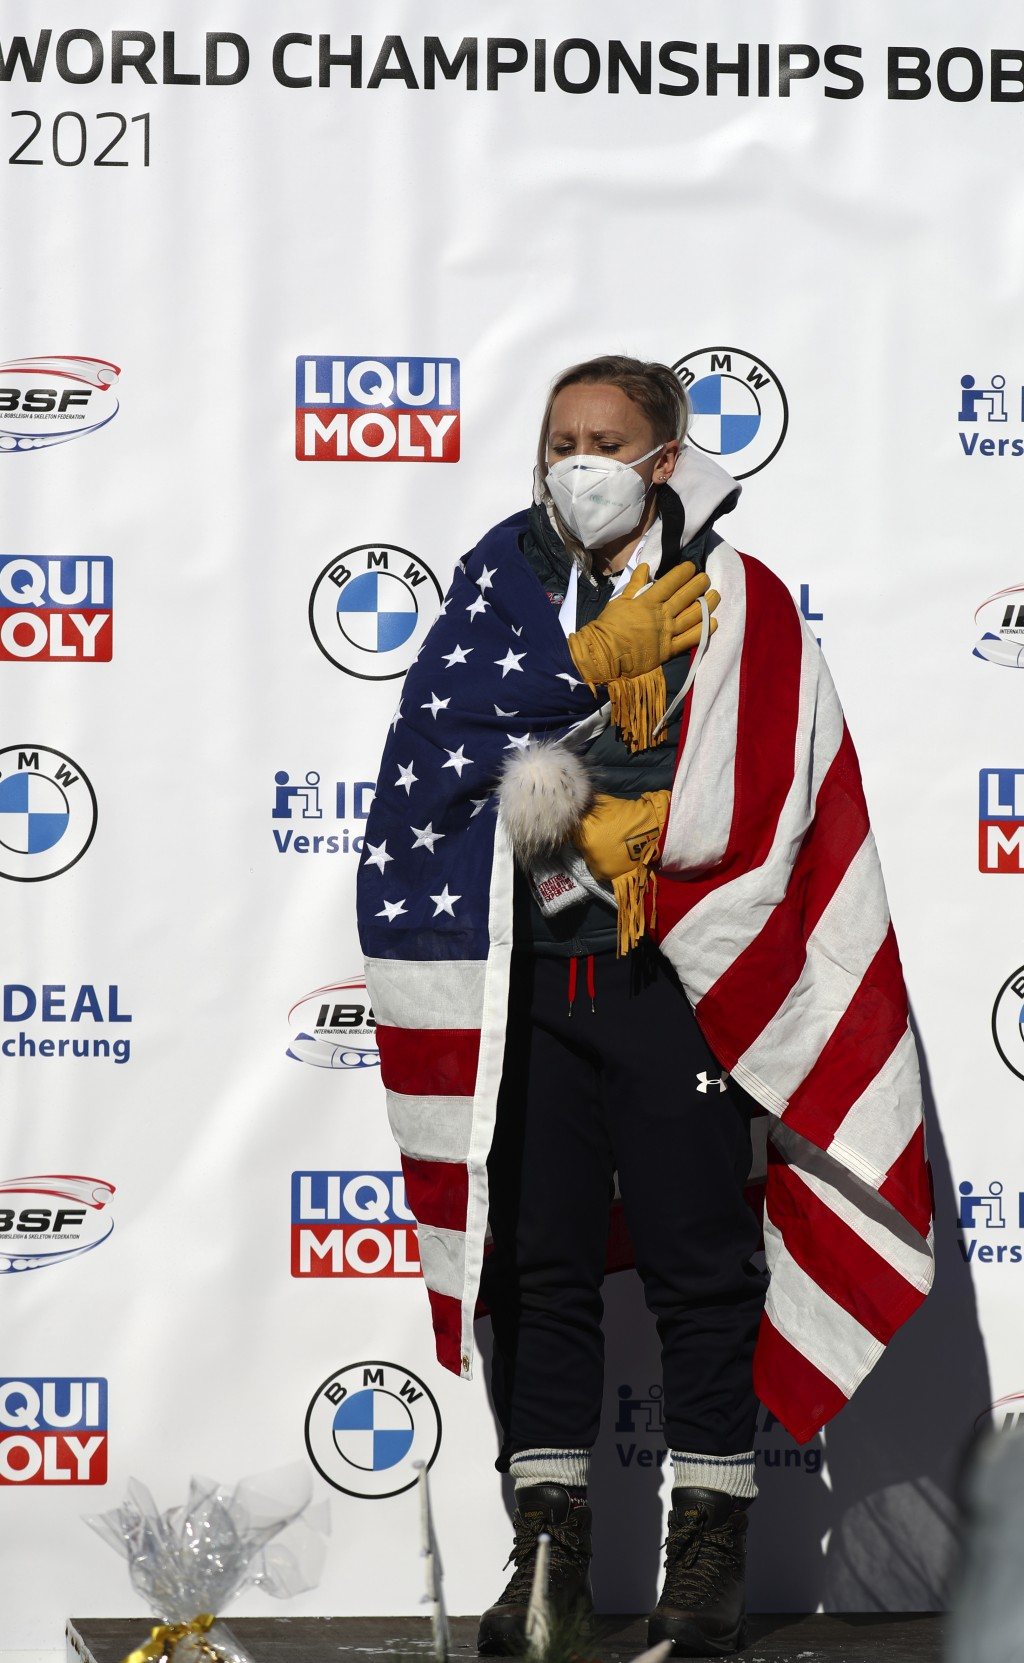 Bobsleigh pilot Kaillie Humphries of the United States stands on the podium after taking first place in the women's monobob race at the Bobsleigh and ...